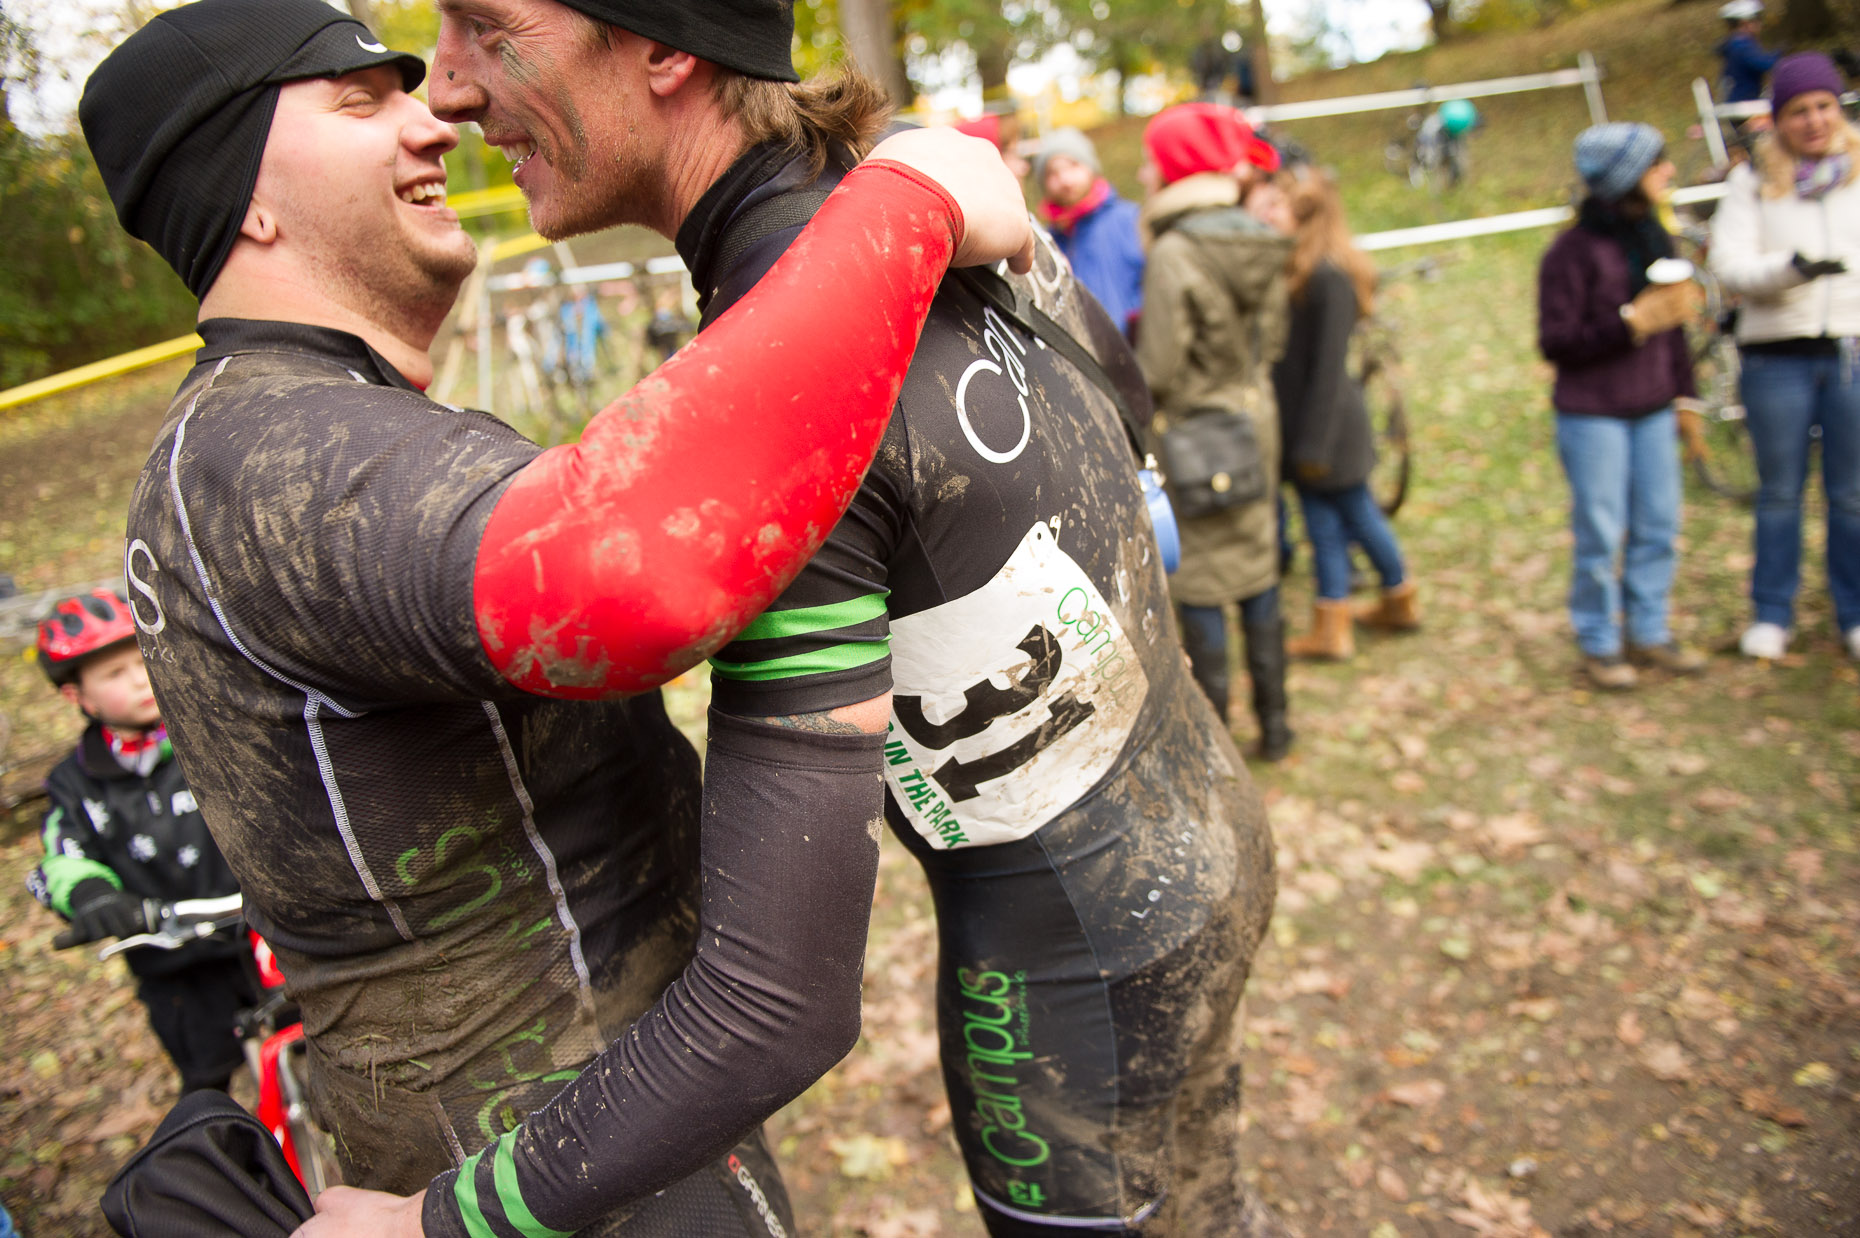 aaron-ingrao-cyclocross-cross-in-the-park-Ethan-Tony-hugging